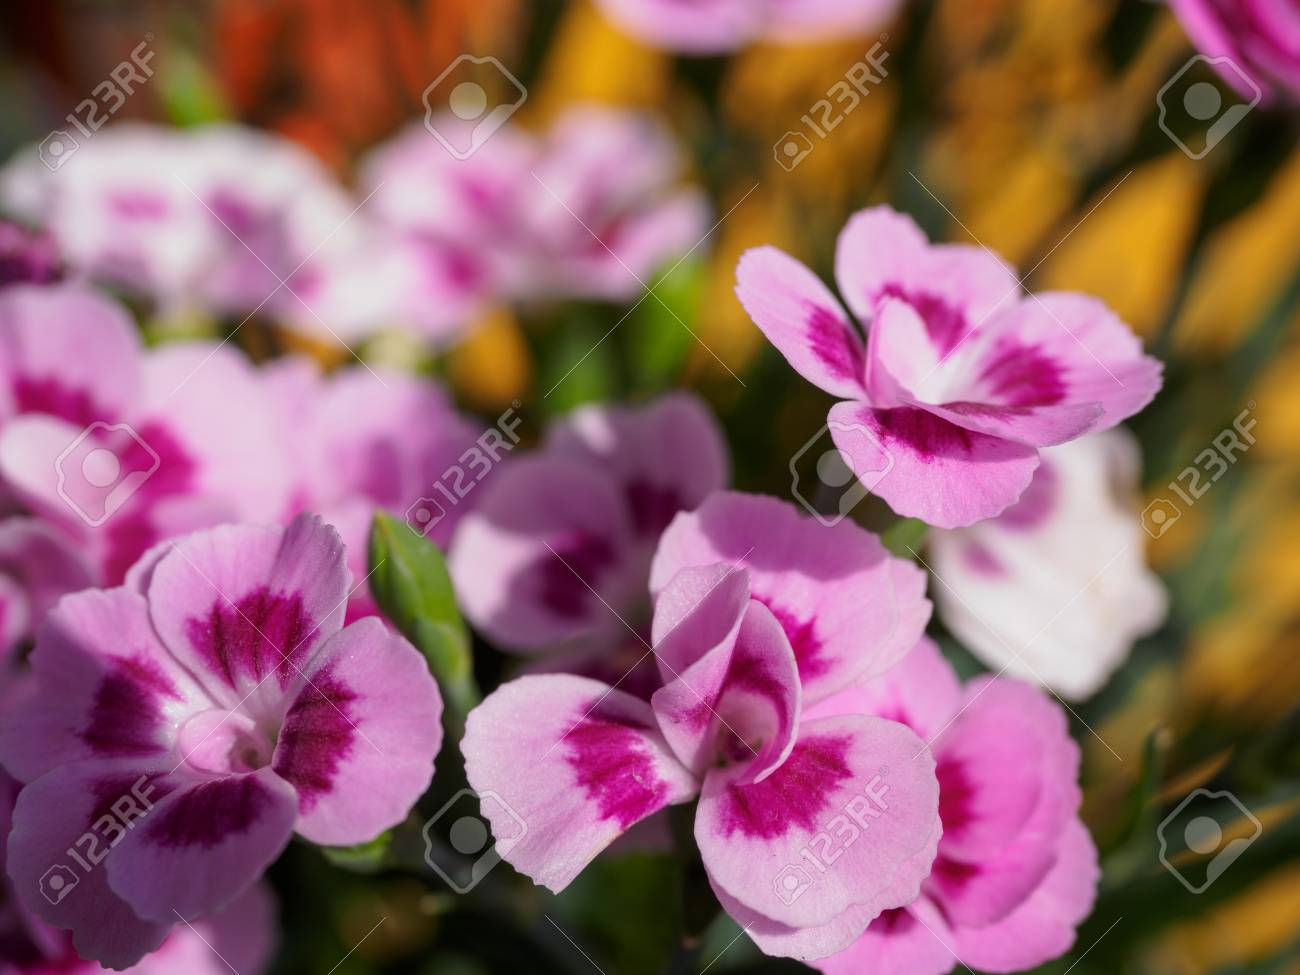 Pink pansy flowers with blur background in the garden stock photo pink pansy flowers with blur background in the garden stock photo 99654958 mightylinksfo